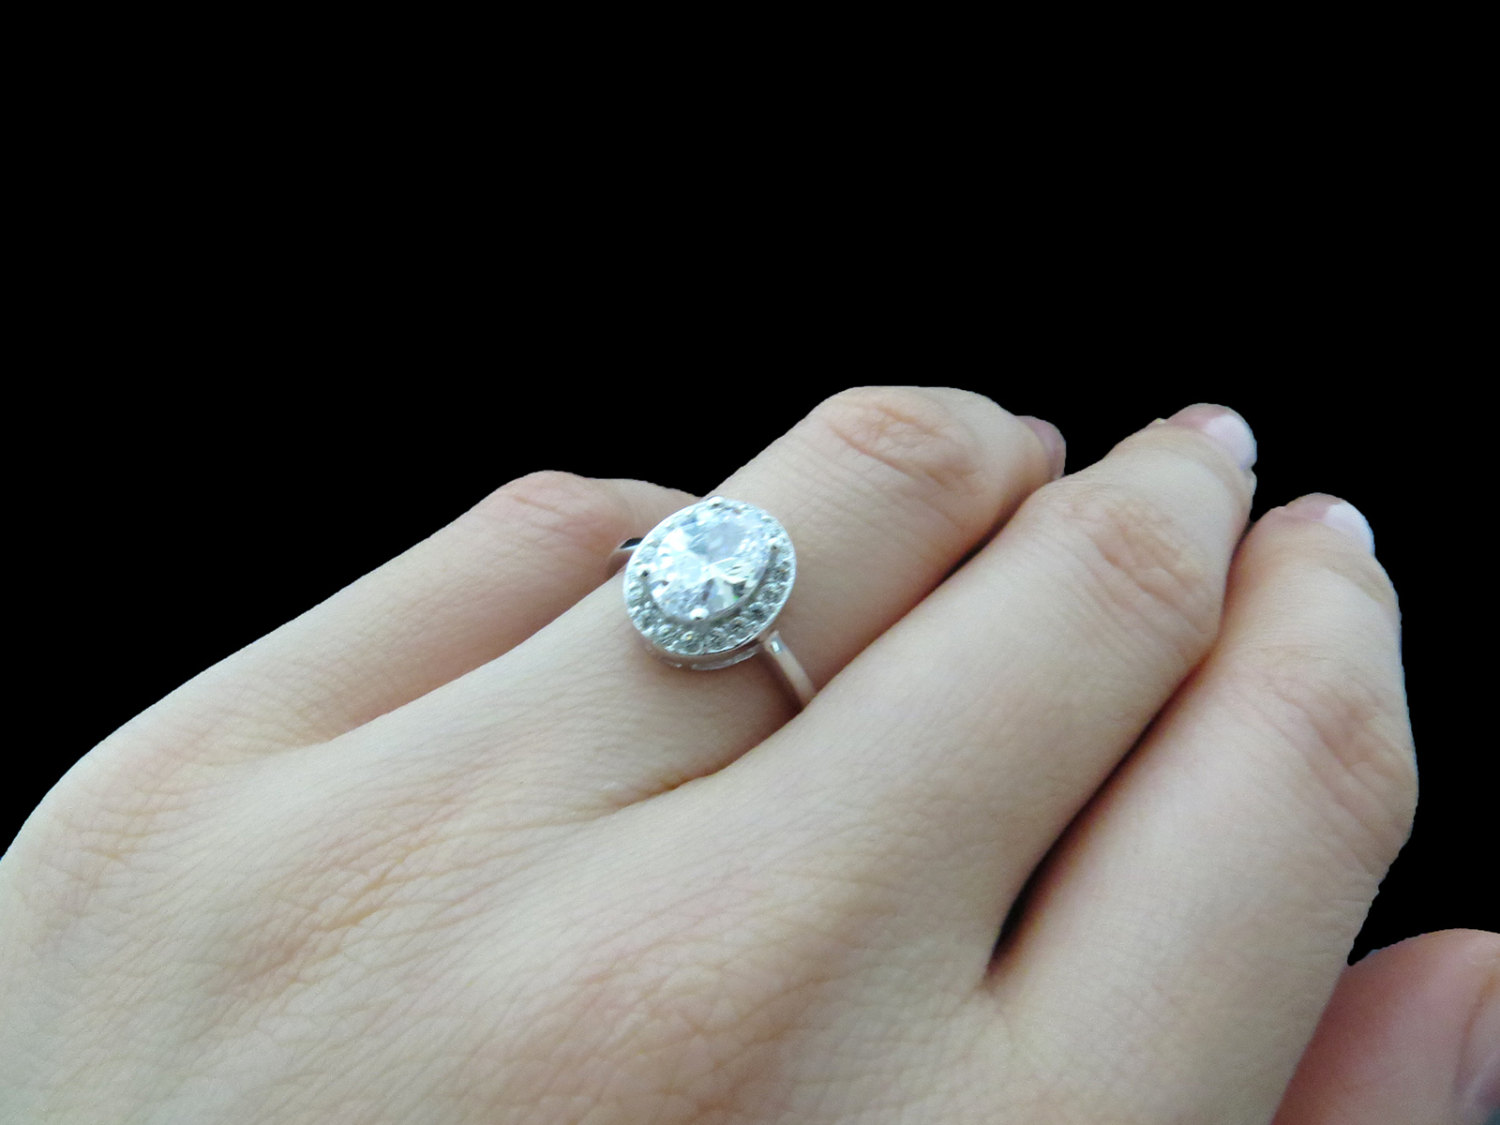 3-stone-diamond-engagement-ring-on-hand-25-carat-diamond-ring-on-hand-wedding-ideas-awesome